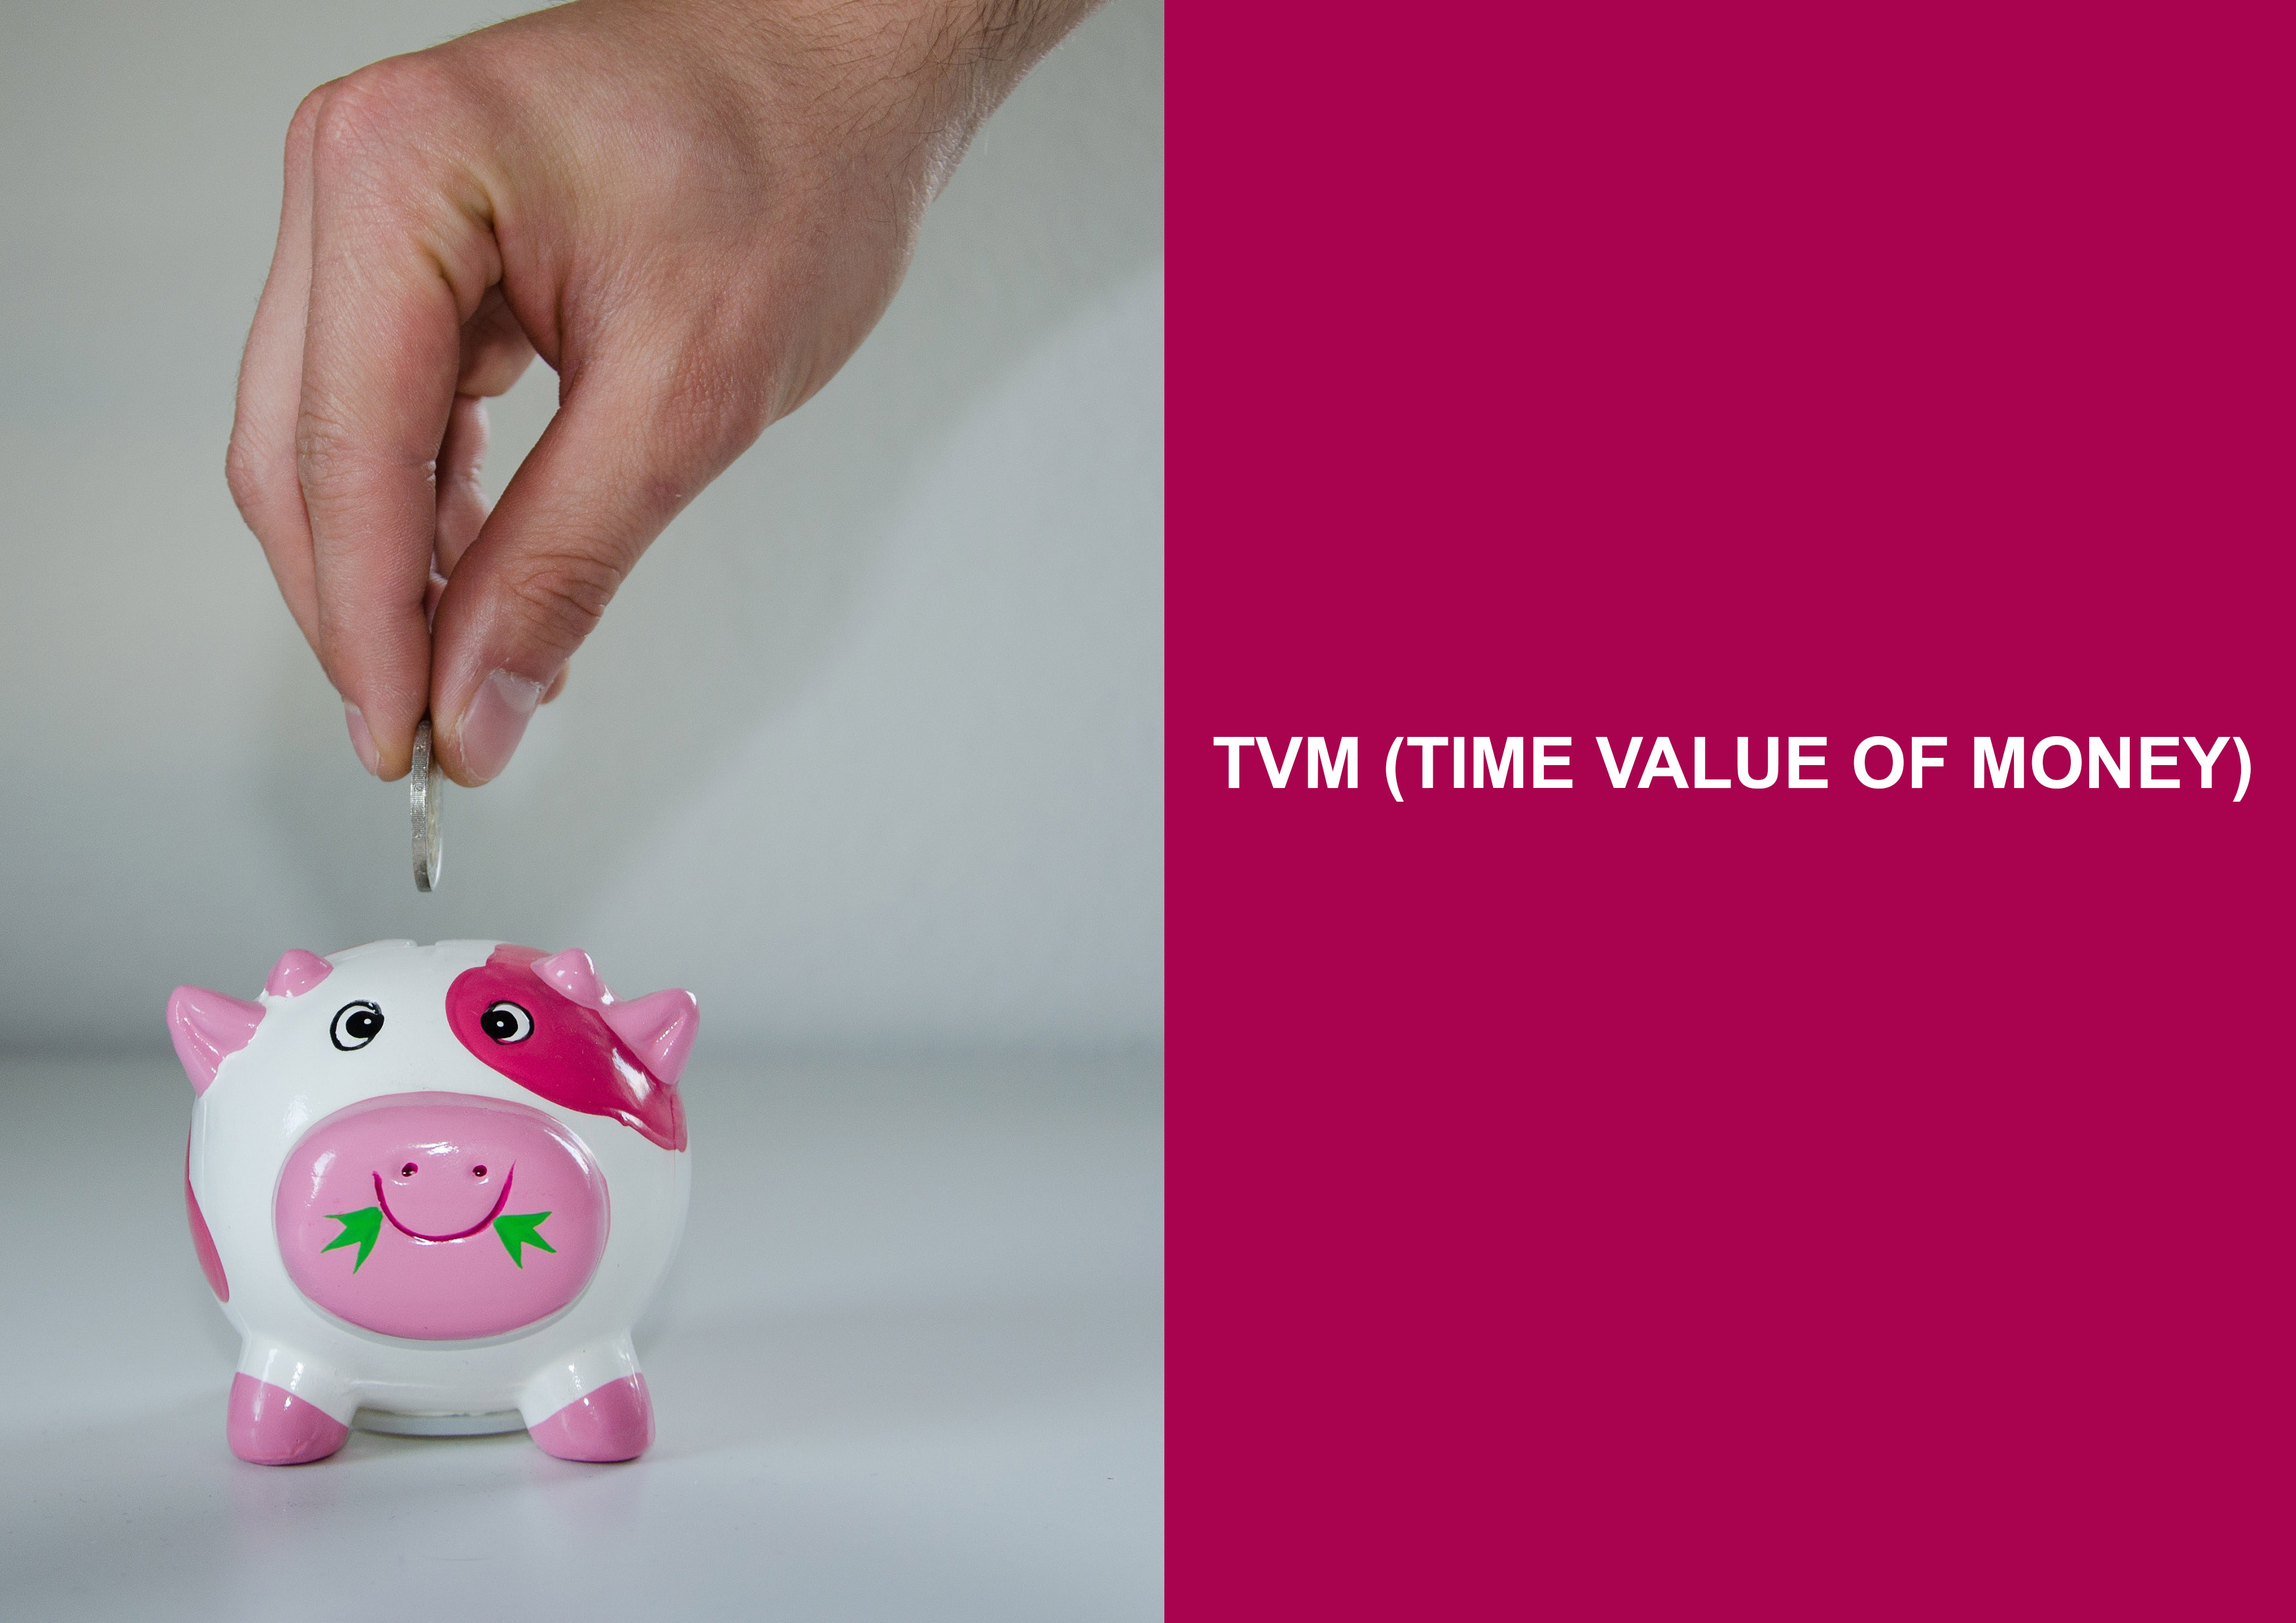 TVM (Time Value of Money)